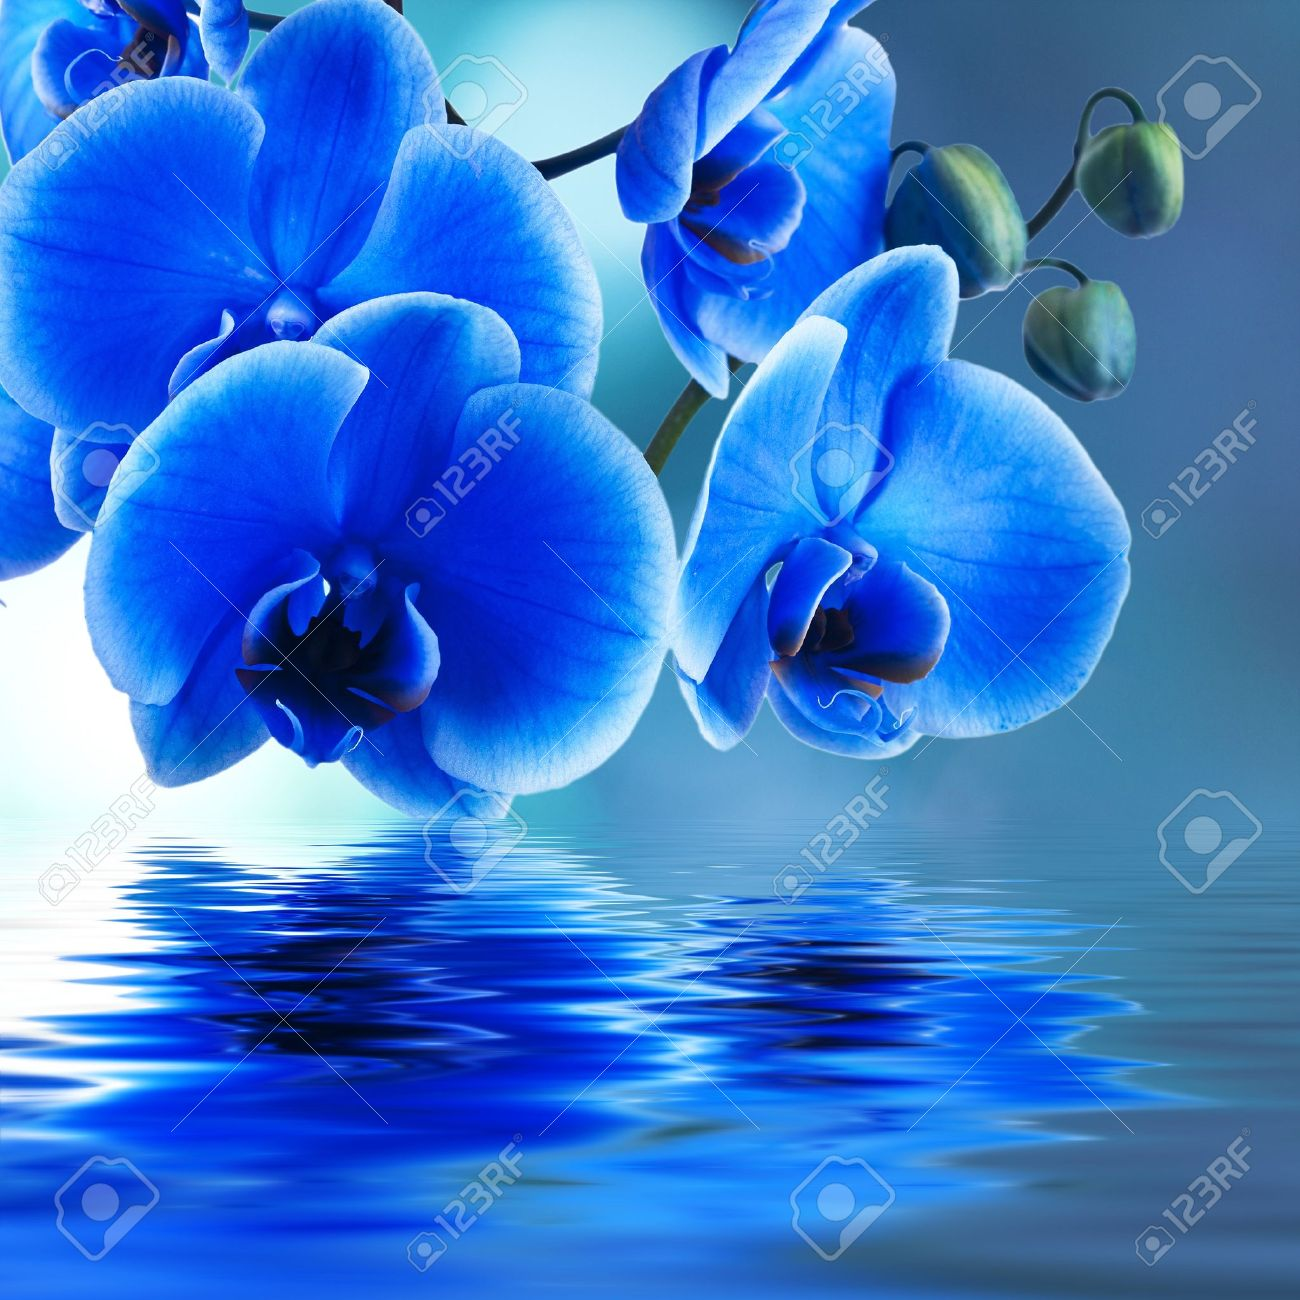 exotic flowers stock photos  pictures. royalty free exotic, Beautiful flower